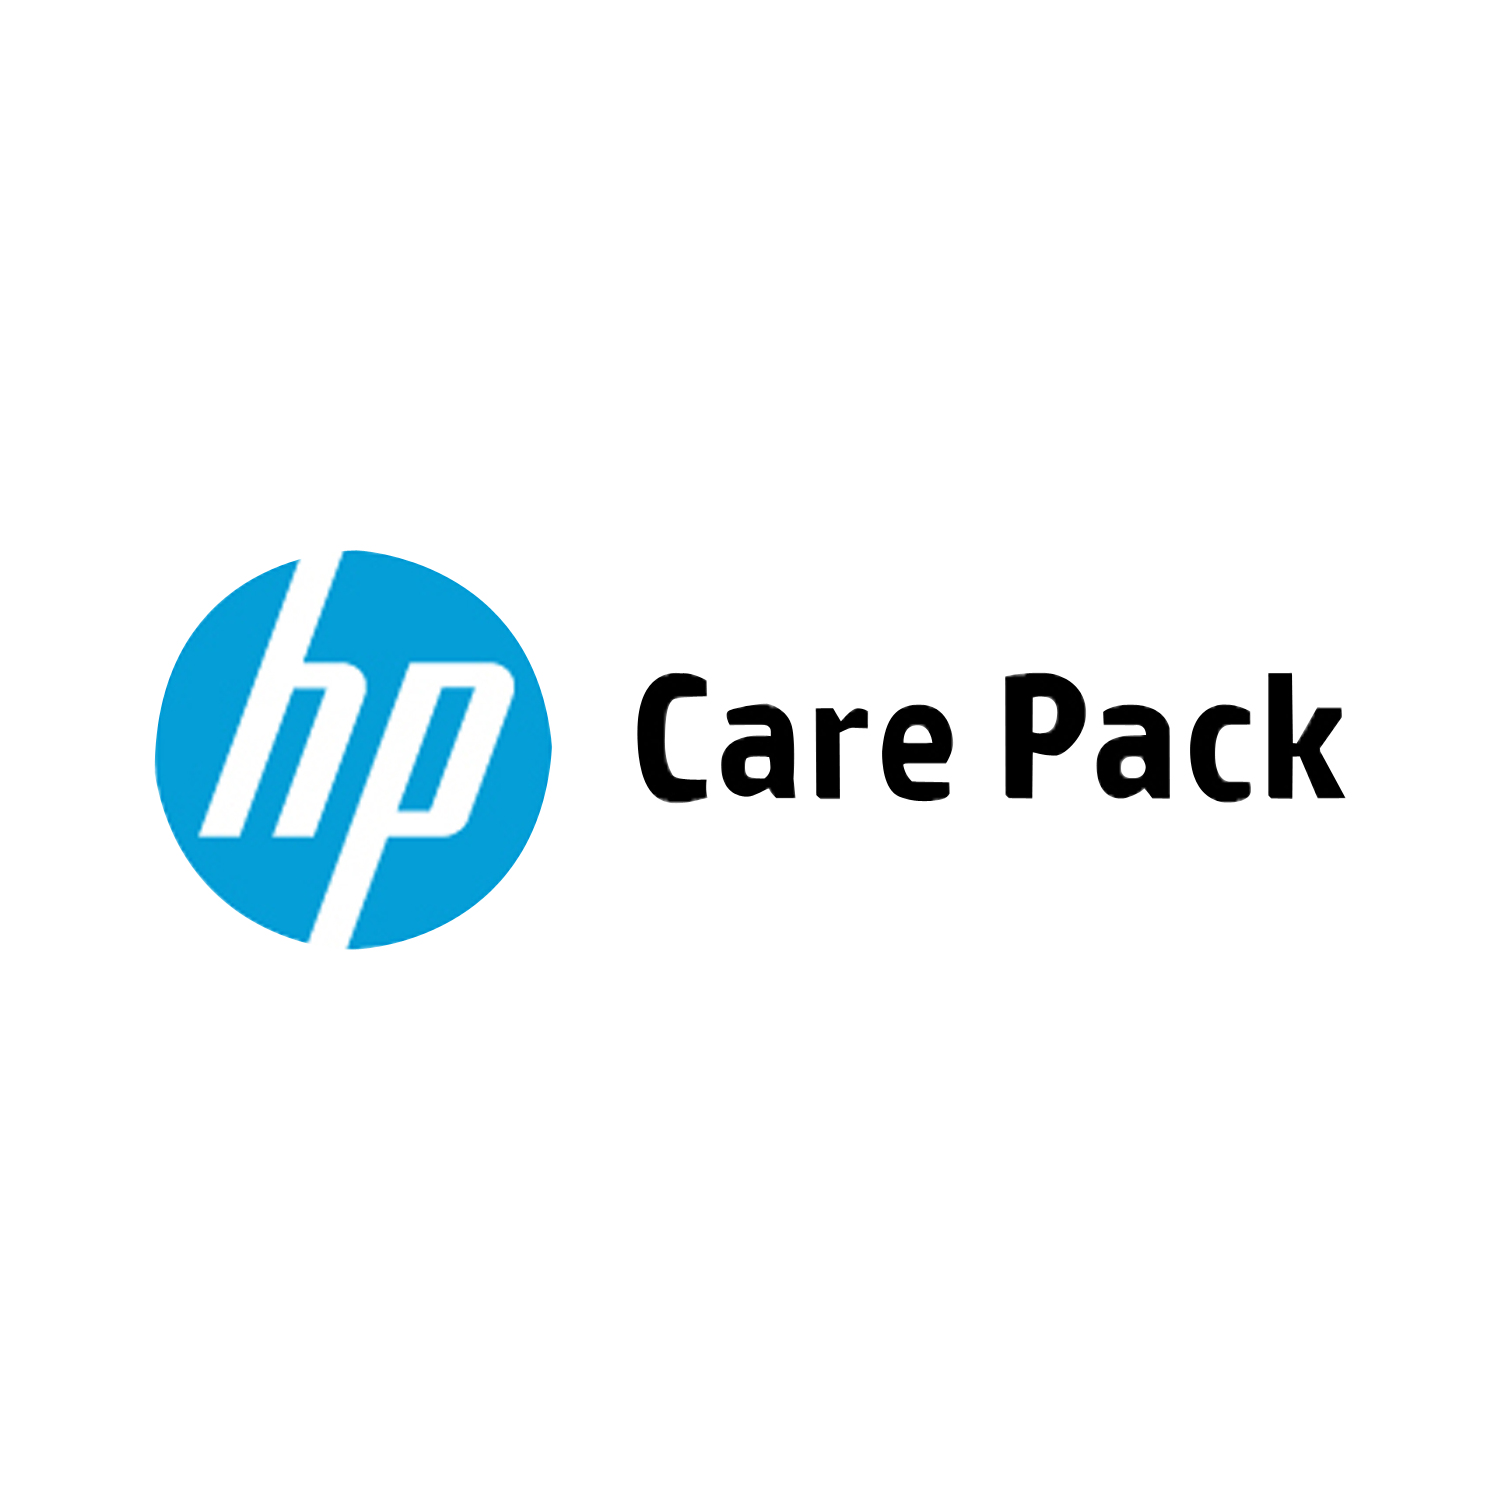 HP Notebook Only Service, Commercial Folio 13 Notebook With 1/1/0 Warrenty, 3y Pickup And Return Service, CPU Only, HP Picks Up, Repairs/replaces, Returns Unit. 8am-5pm, Standard Business Day - C2000